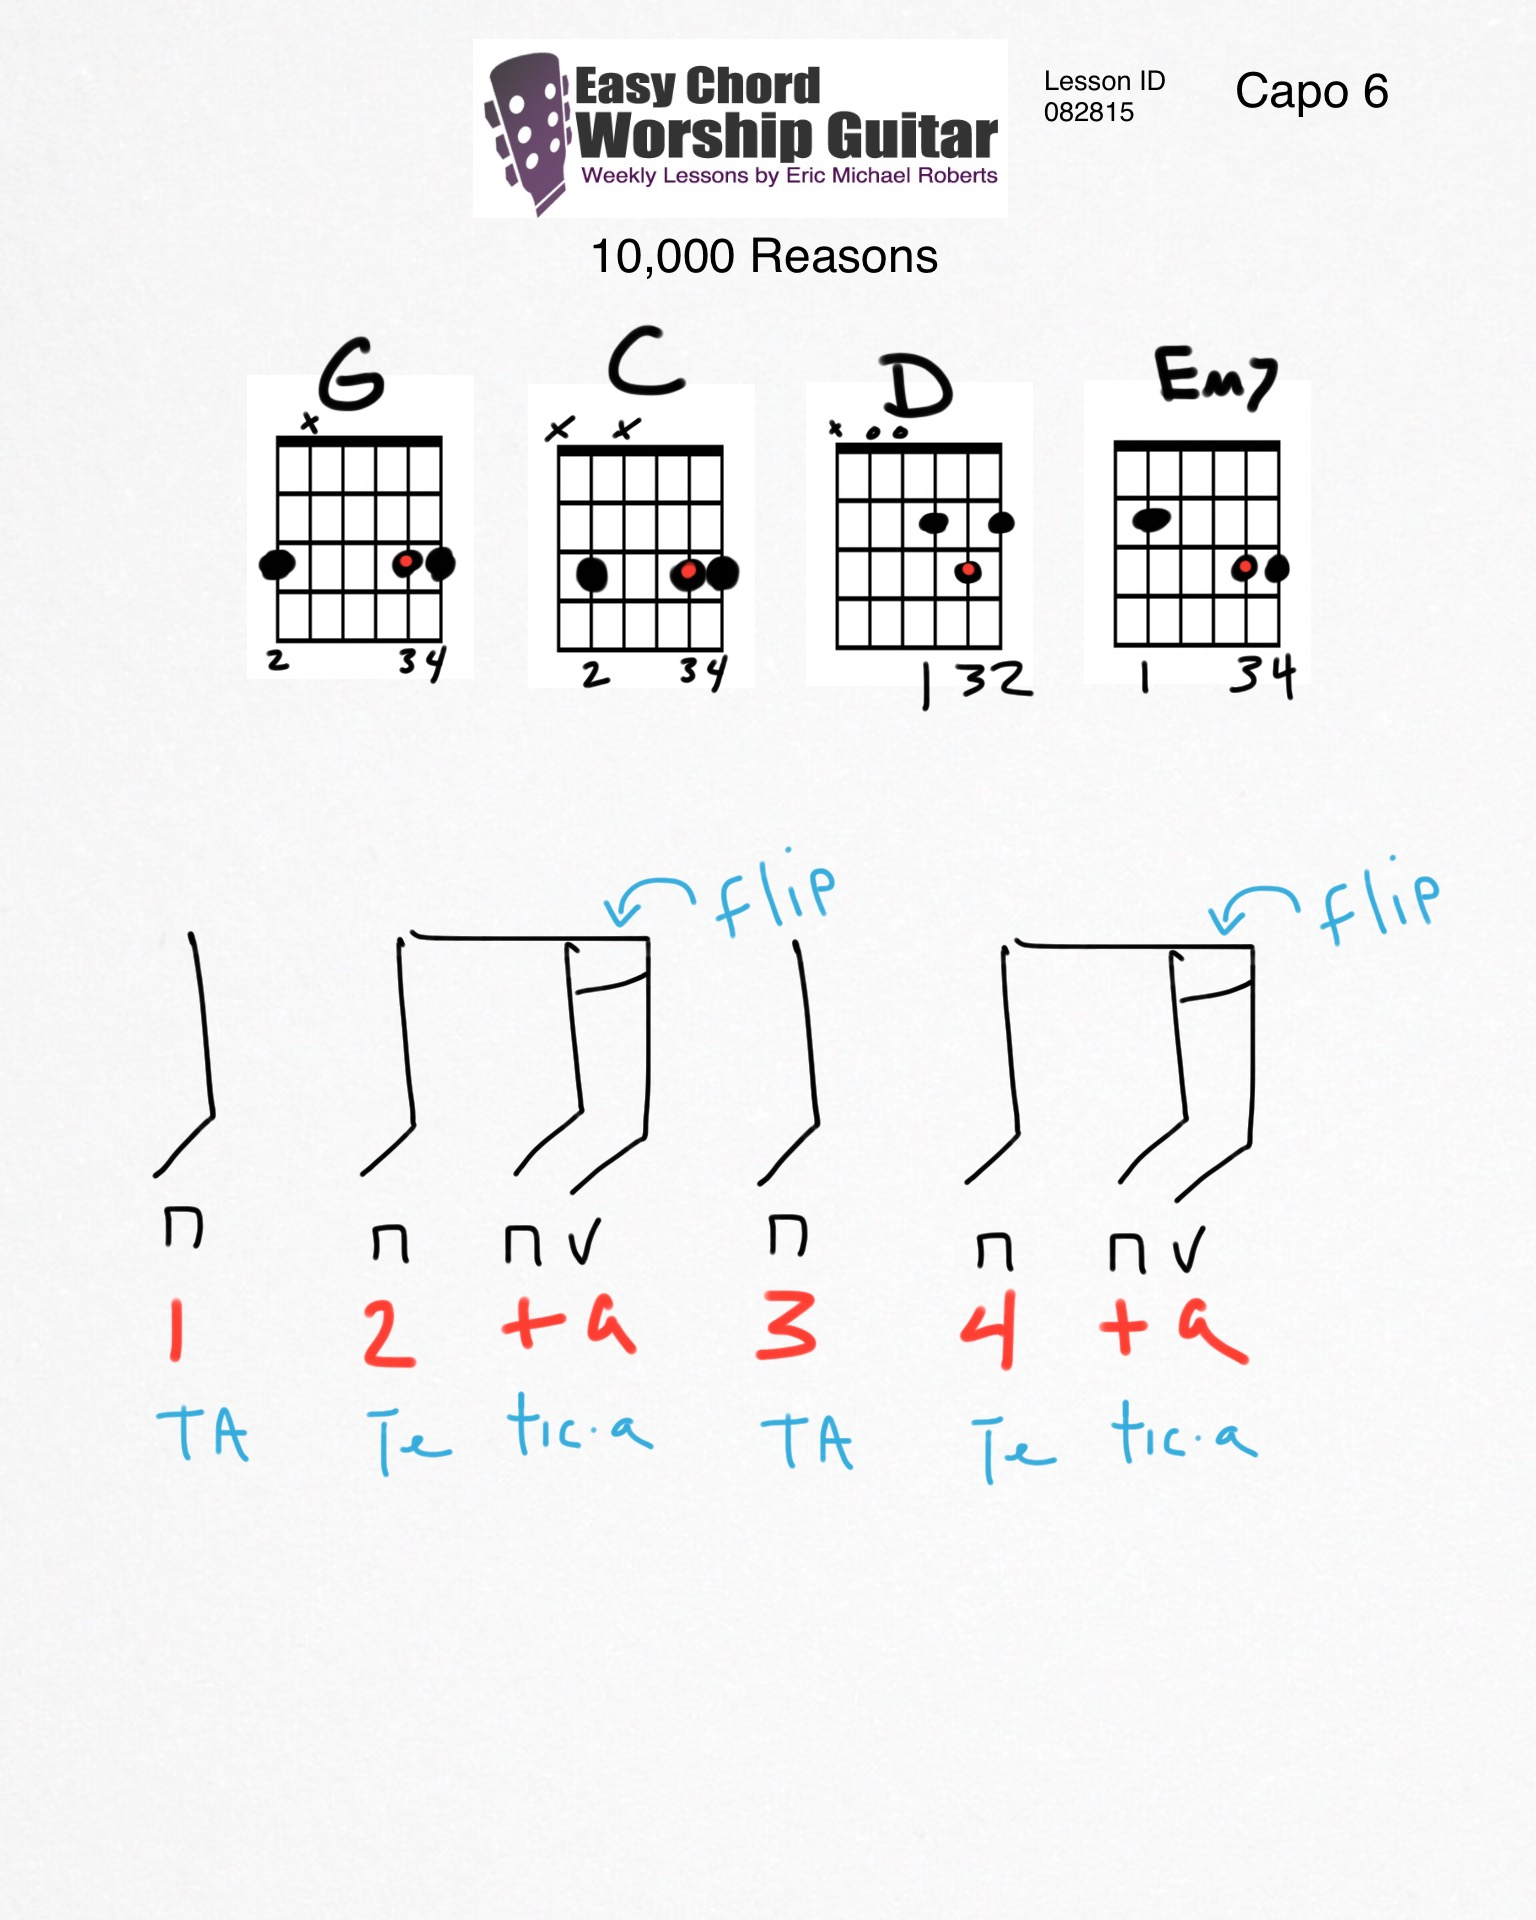 10,000 Reasons Lesson ID 082815 - Easy Chord Worship Guitar